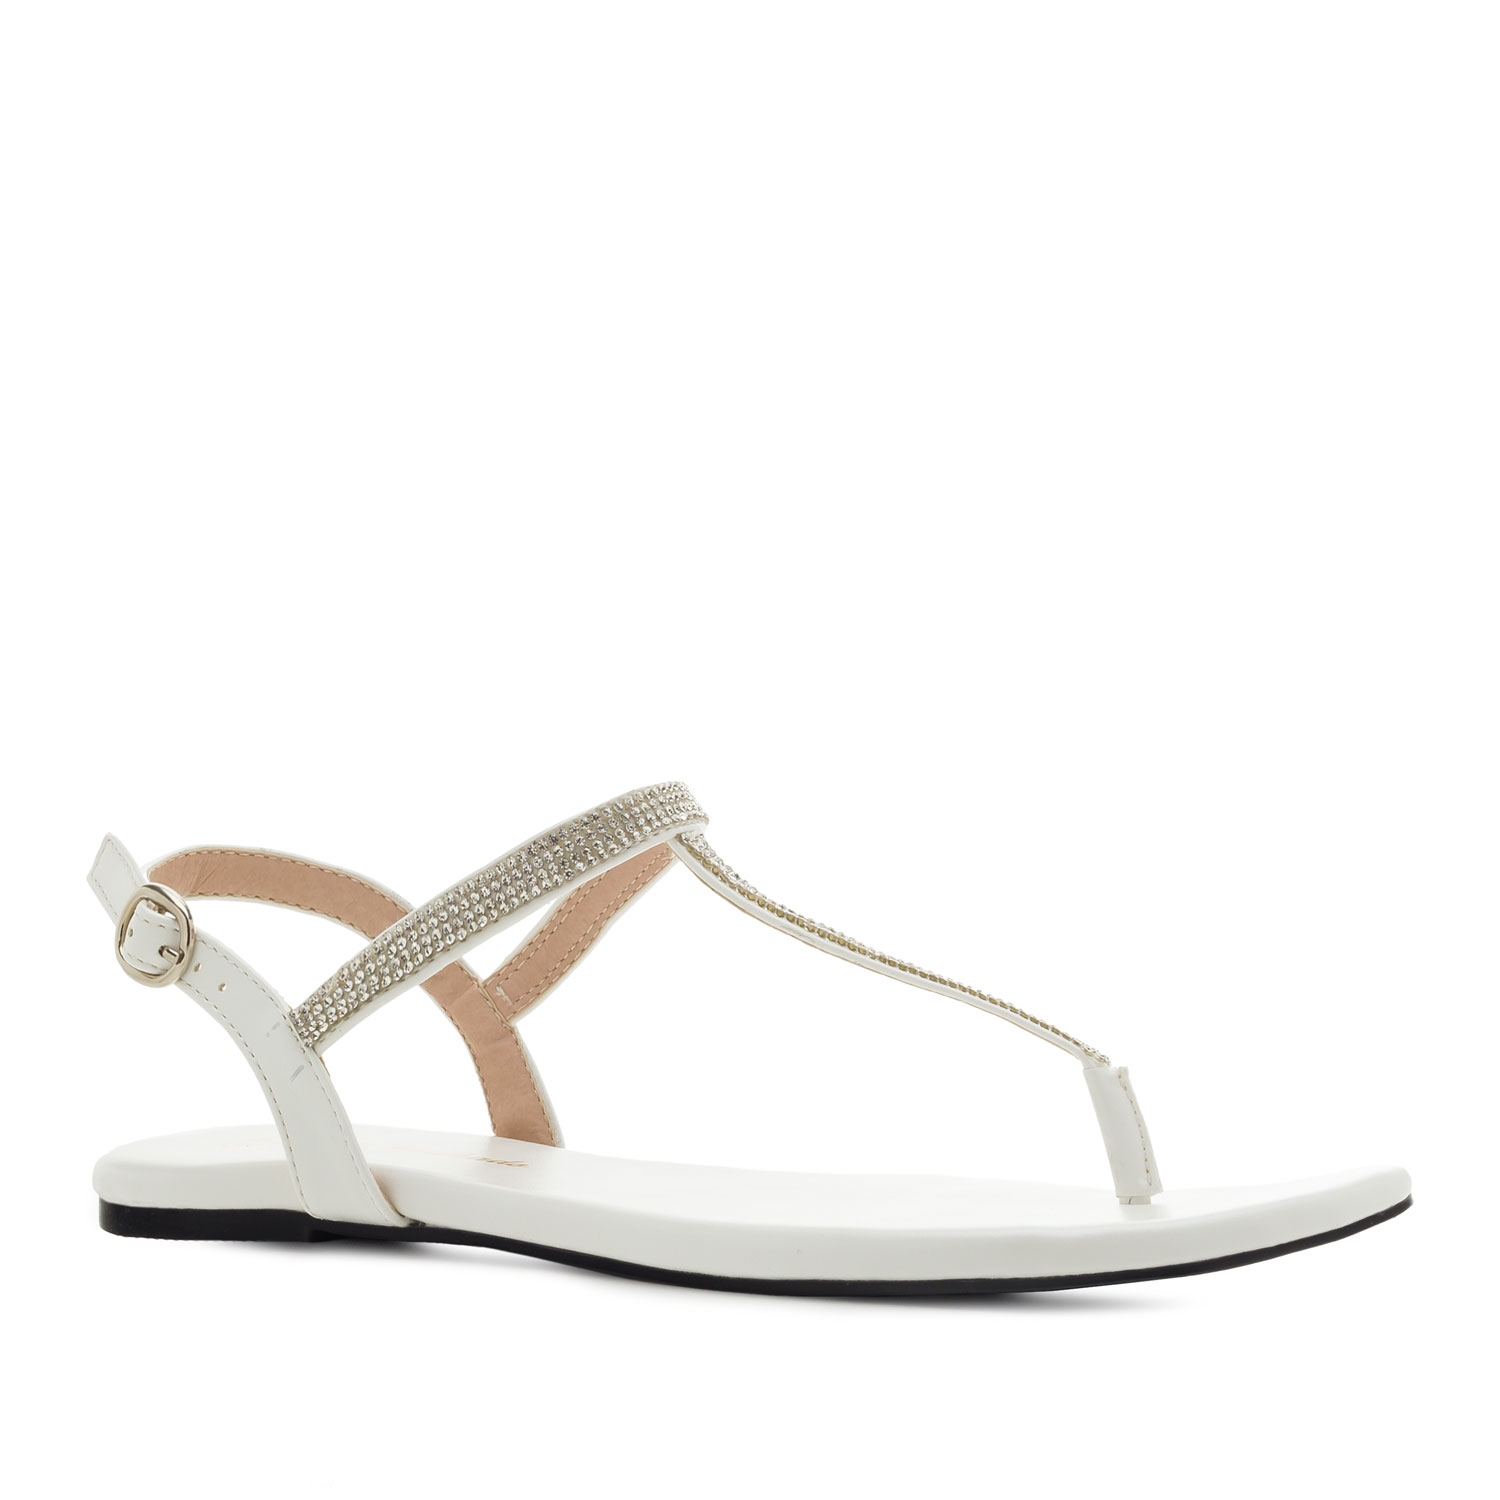 T-Bar Flat Sandals in White faux Leather with Strass